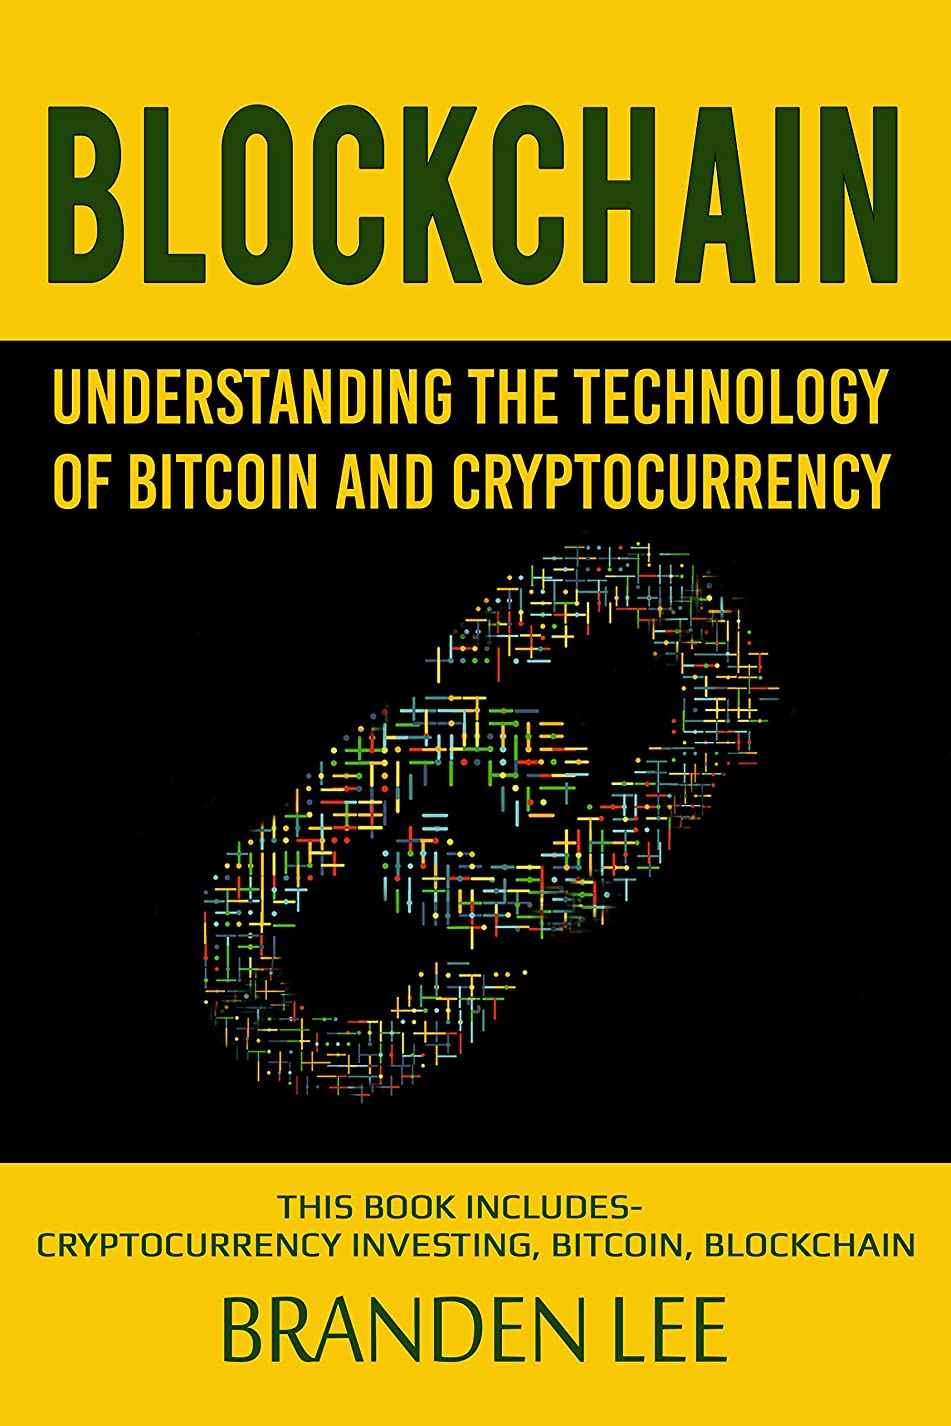 男性細い十分ですBlockchain: Understanding the Technology of Bitcoin and Cryptocurrency: This Book Includes- Cryptocurrency Investing, Bitcoin, Blockchain (English Edition)